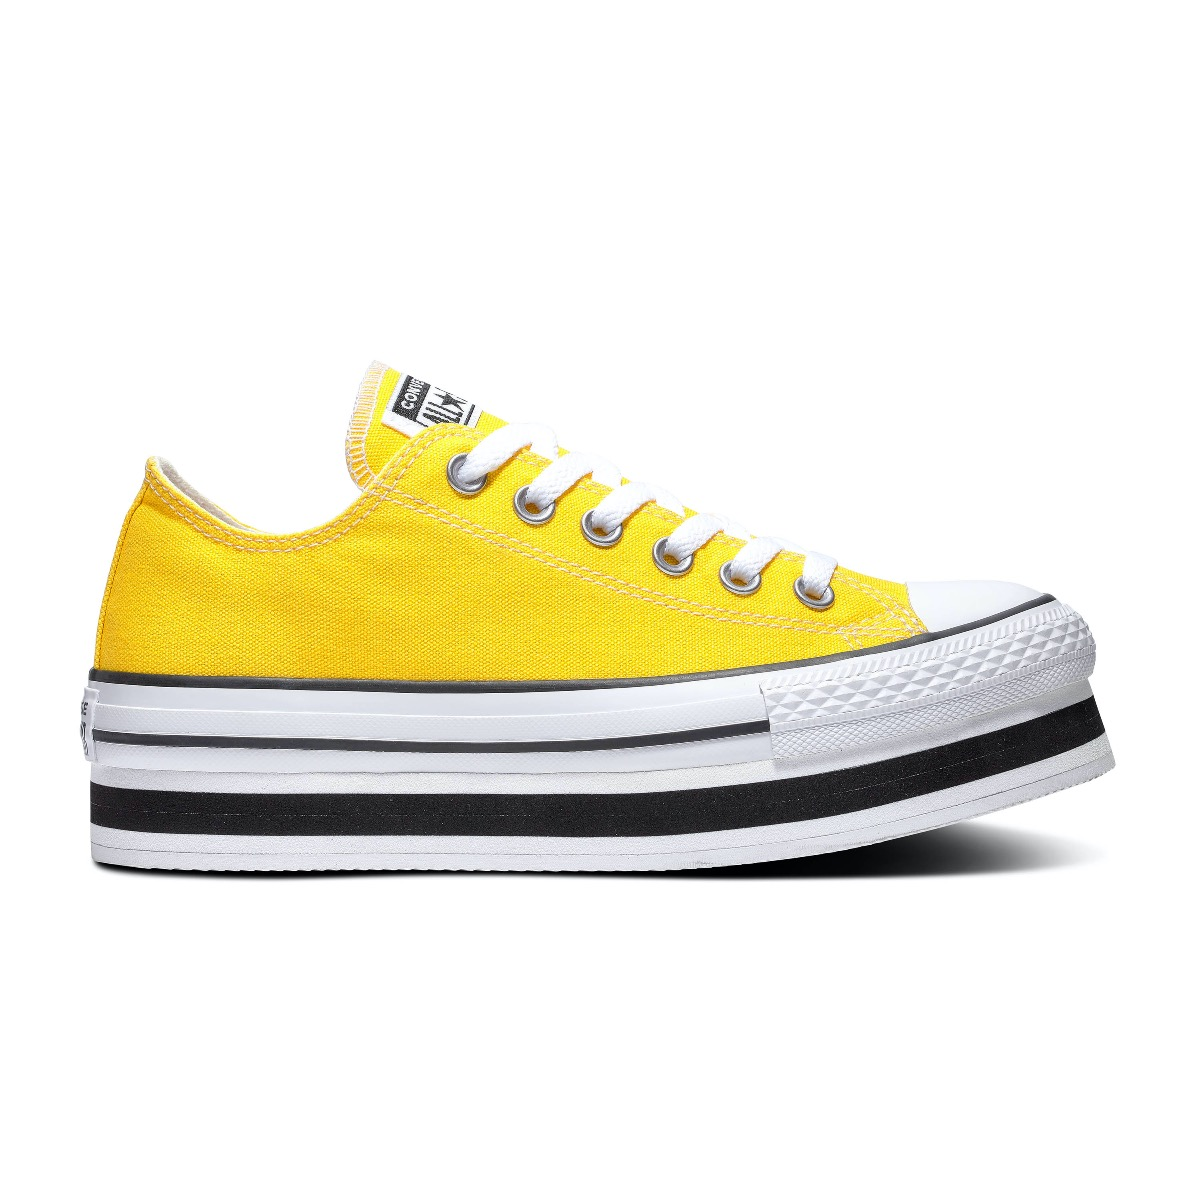 Converse All Stars Chuck Taylor 567998C Geel - Wit -37.5 maat 37.5